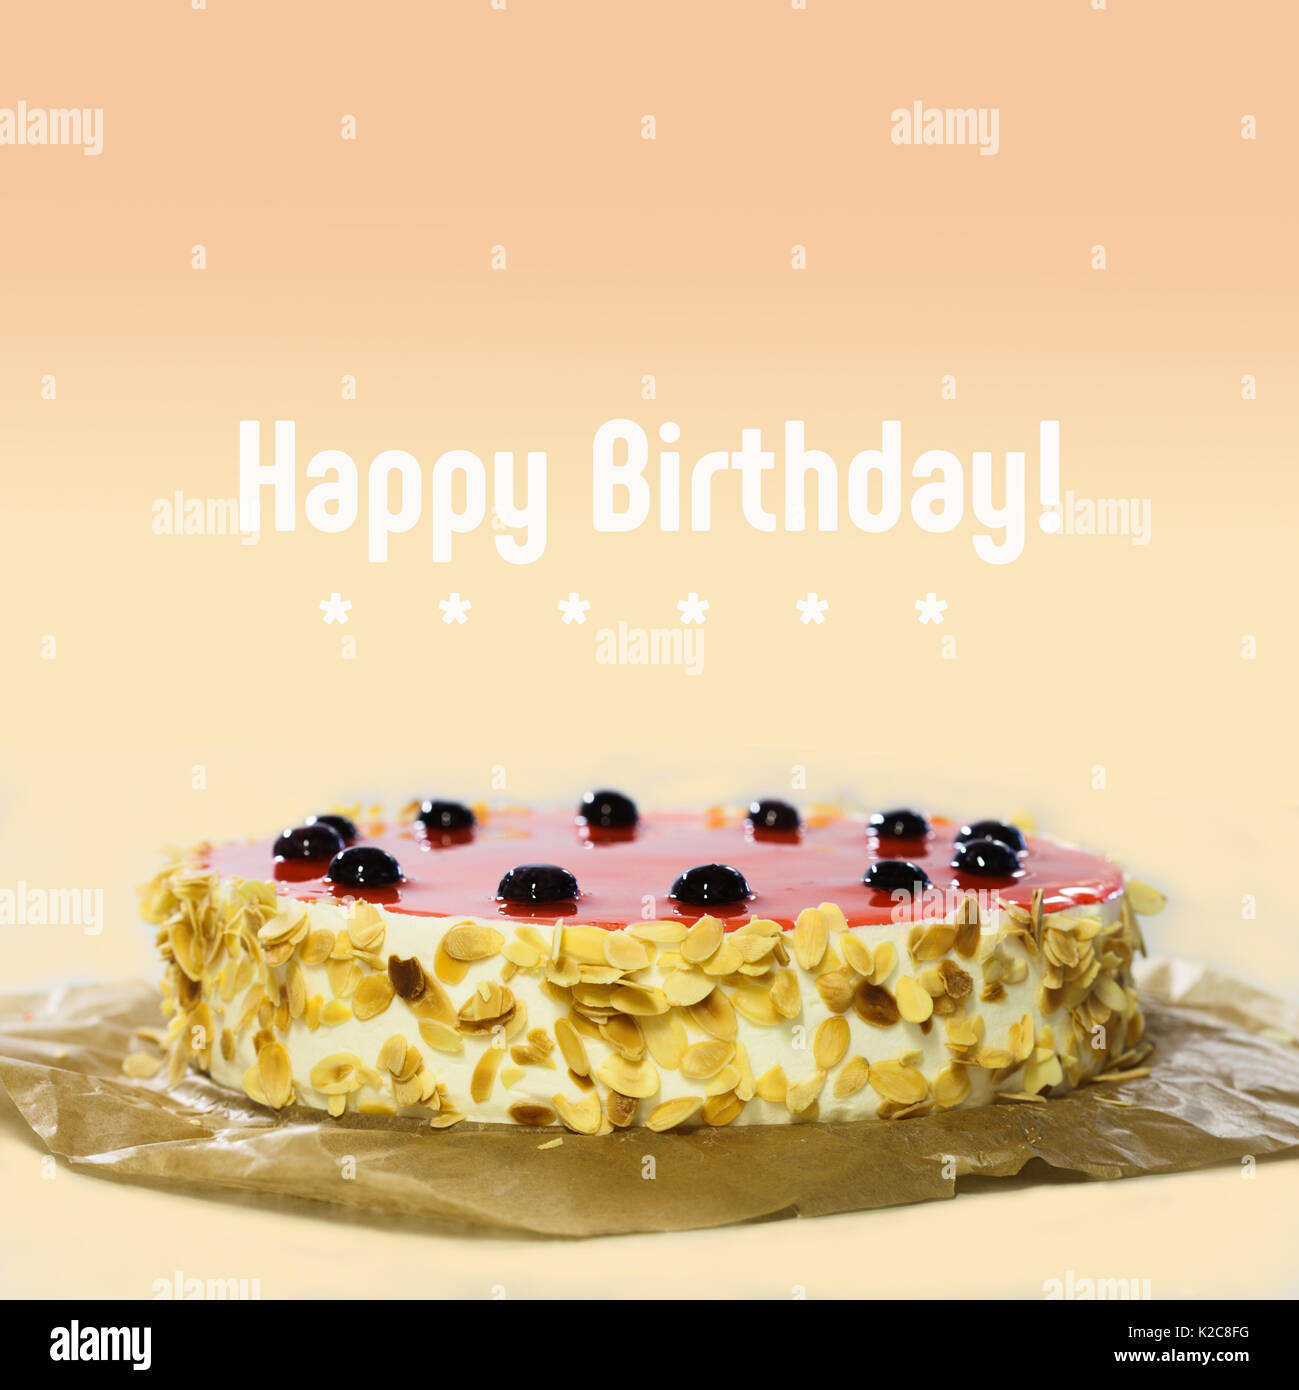 Happy Birthday Card Cake With Black Cherry Red Jelly Almond Stock